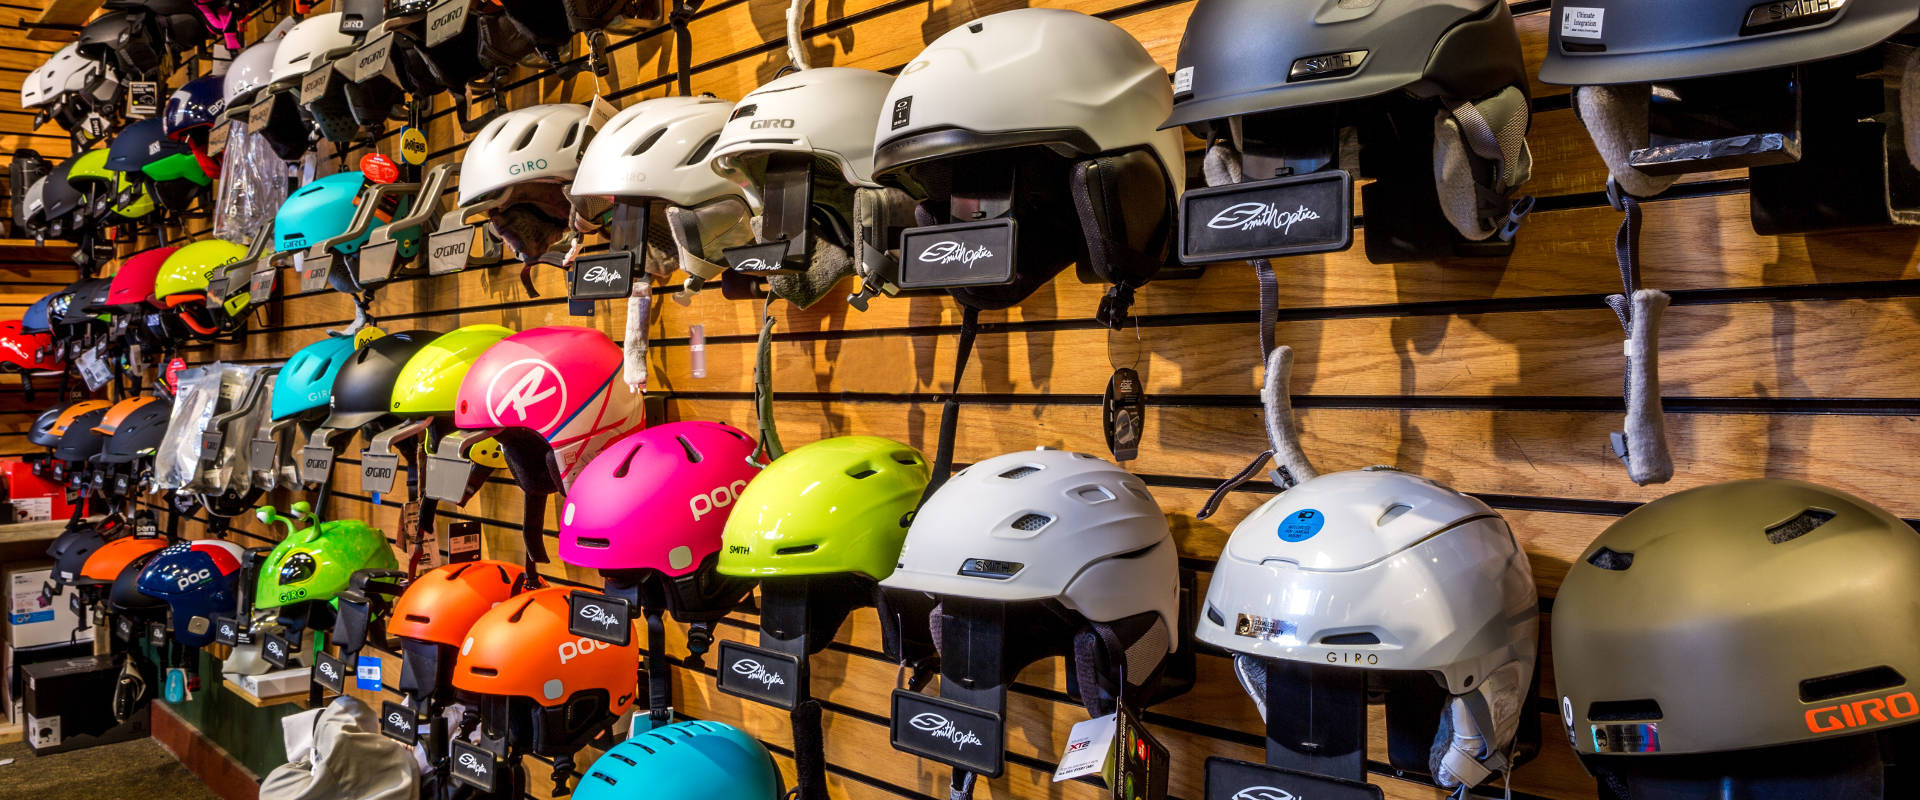 Gear up at MTNside Ski & Ride